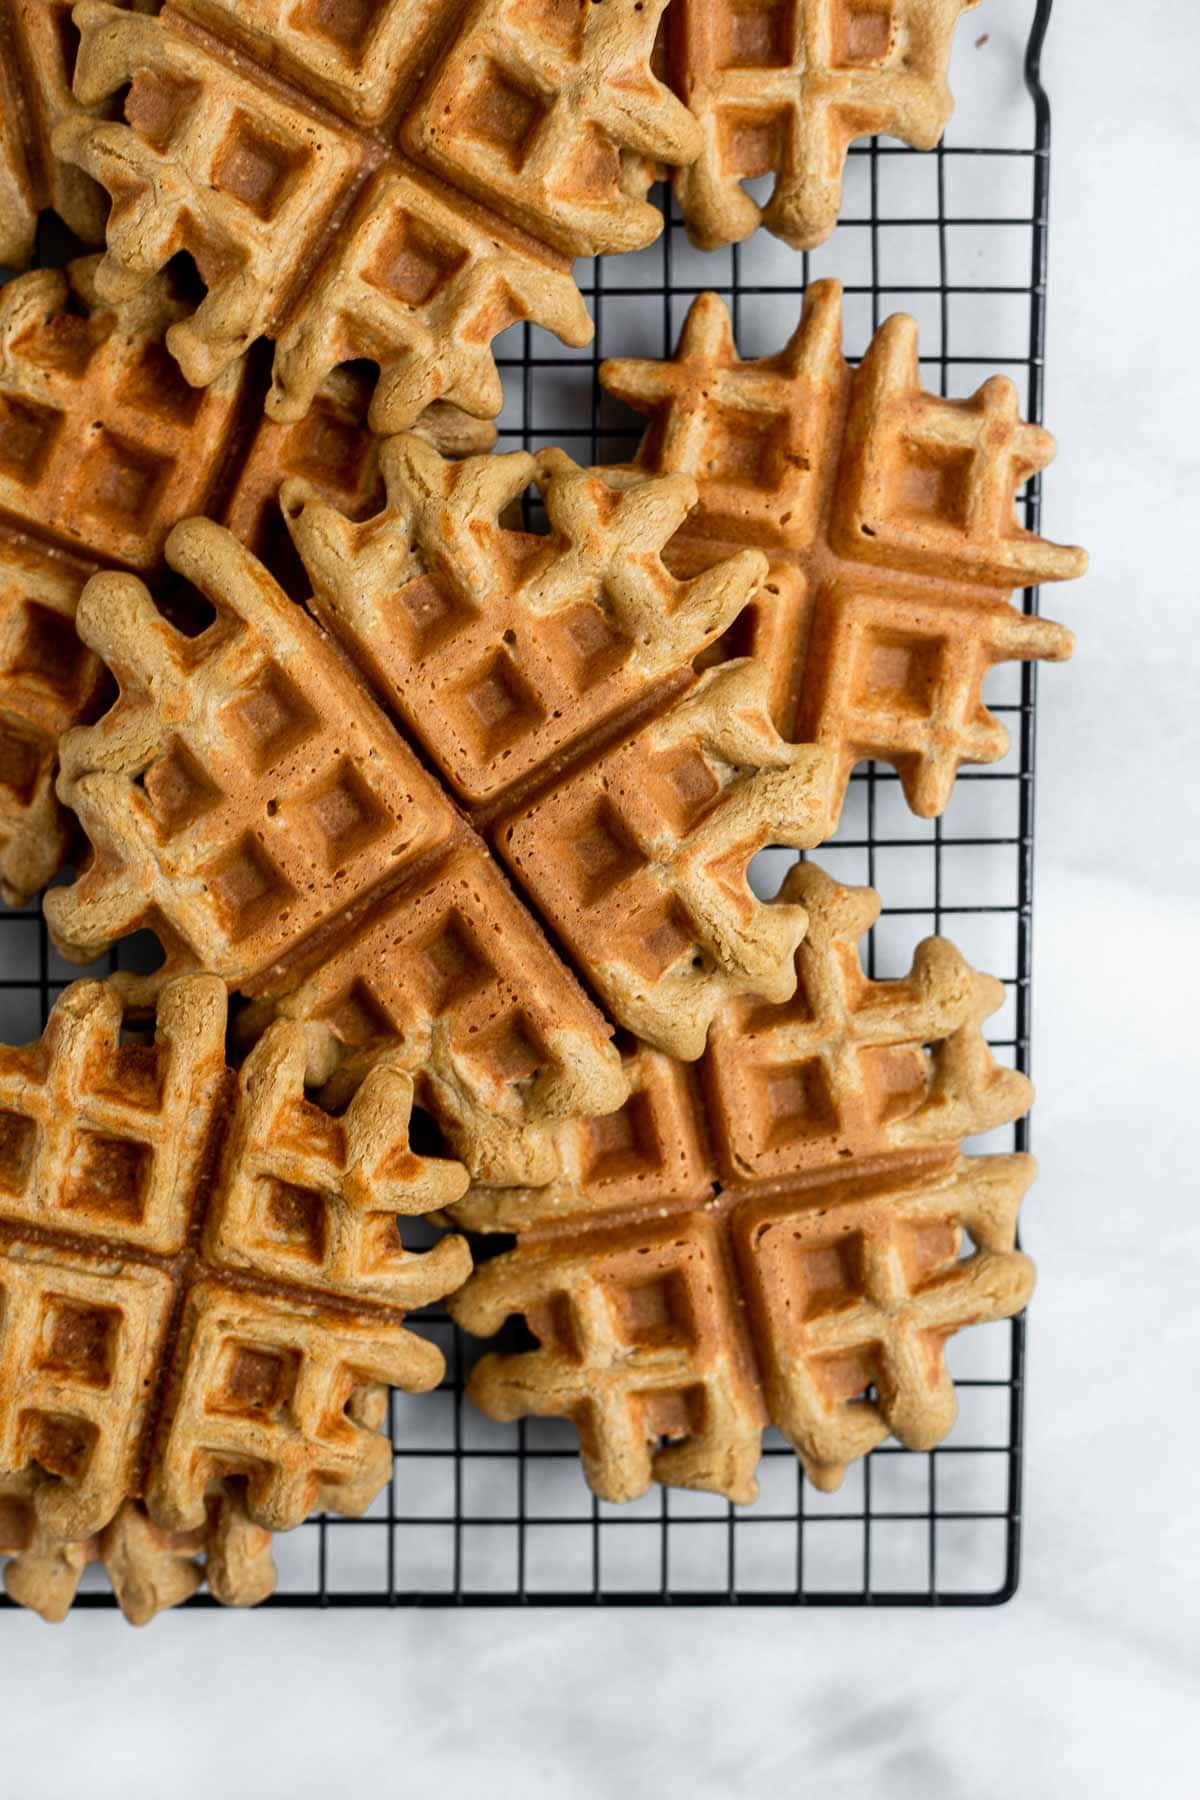 Waffles on a cooling rack.